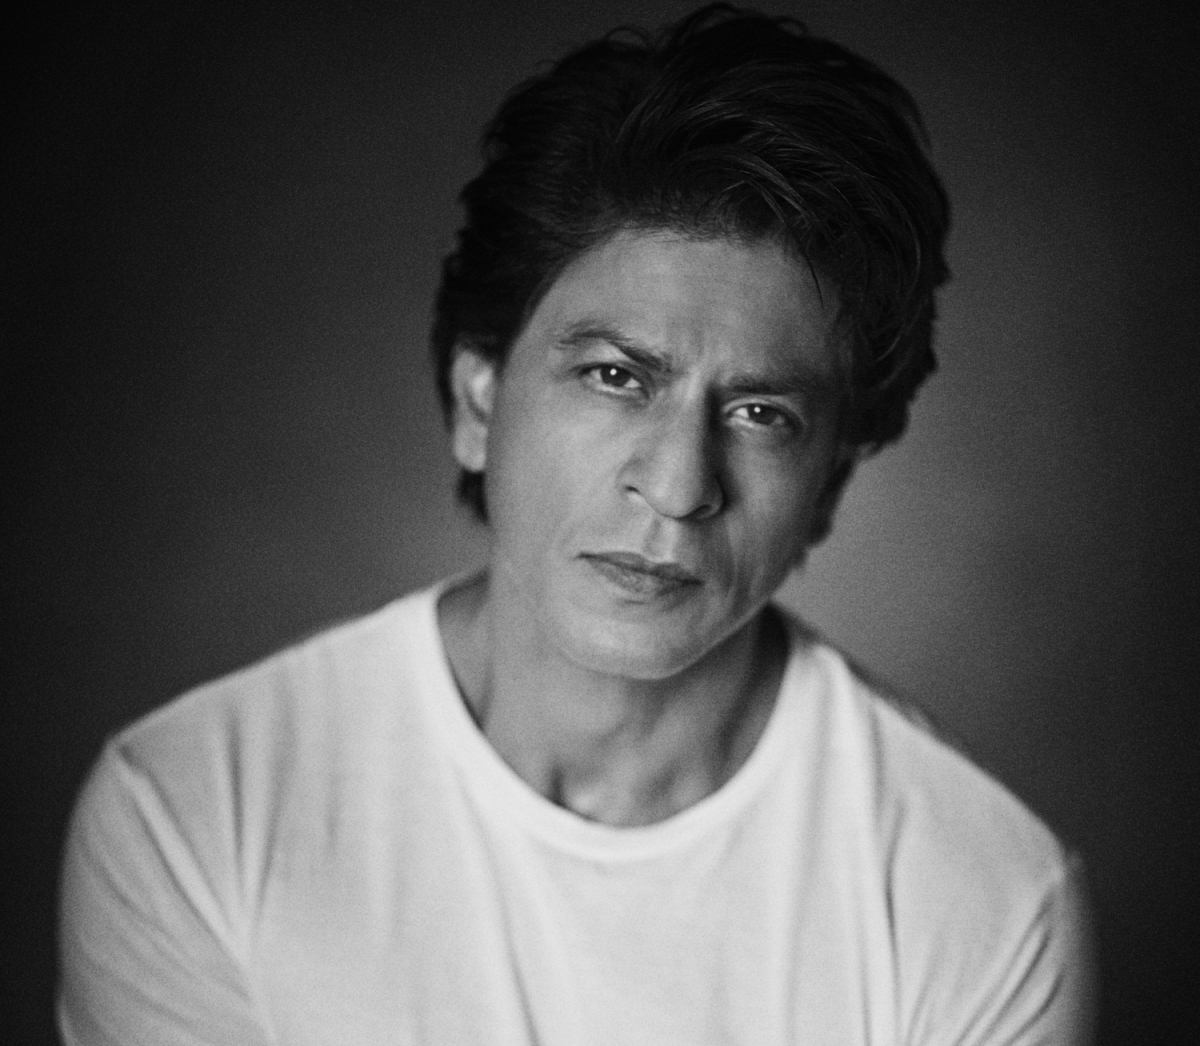 Shah Rukh Khan to be felicitated with 'Excellence in Cinema' award in Victoria